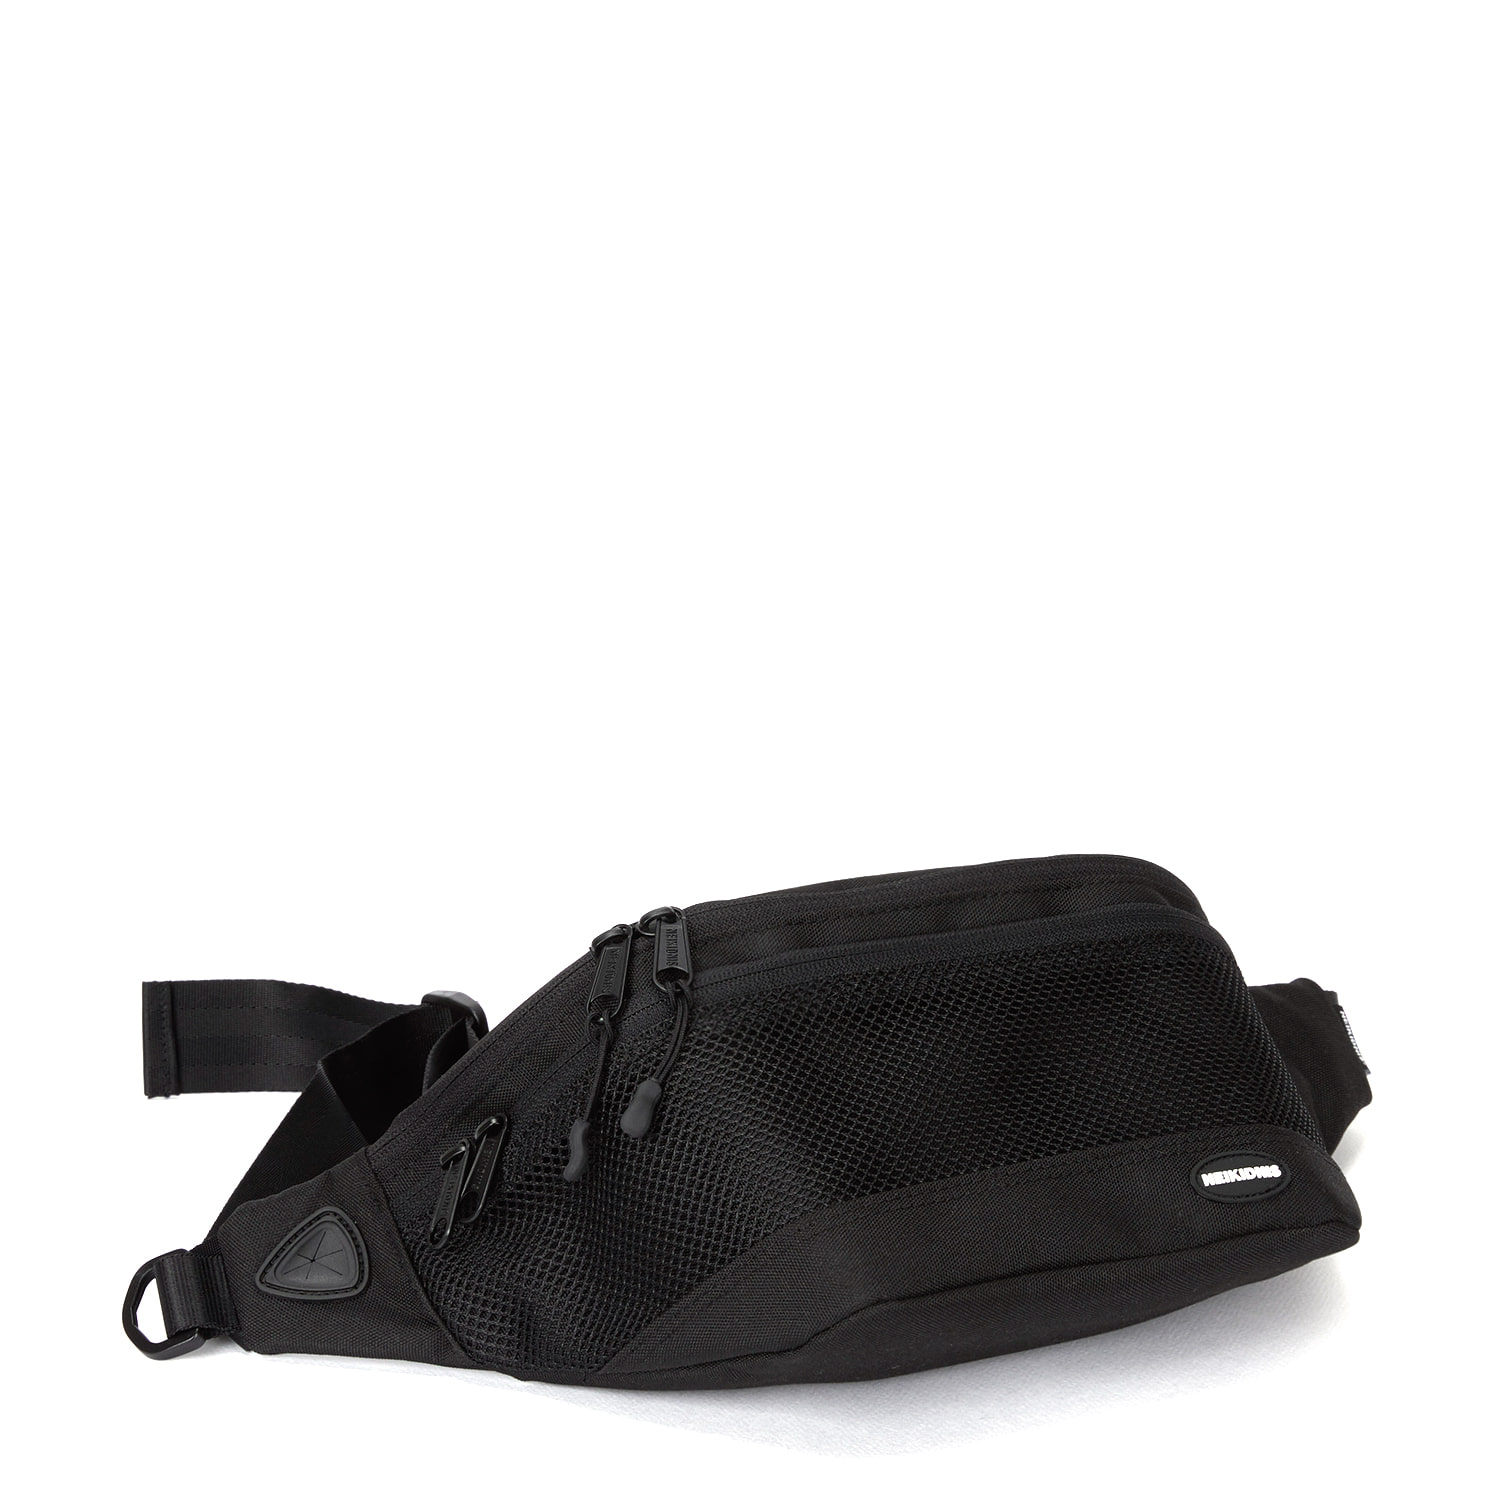 WIDE VISION HIP SACK / BLACK